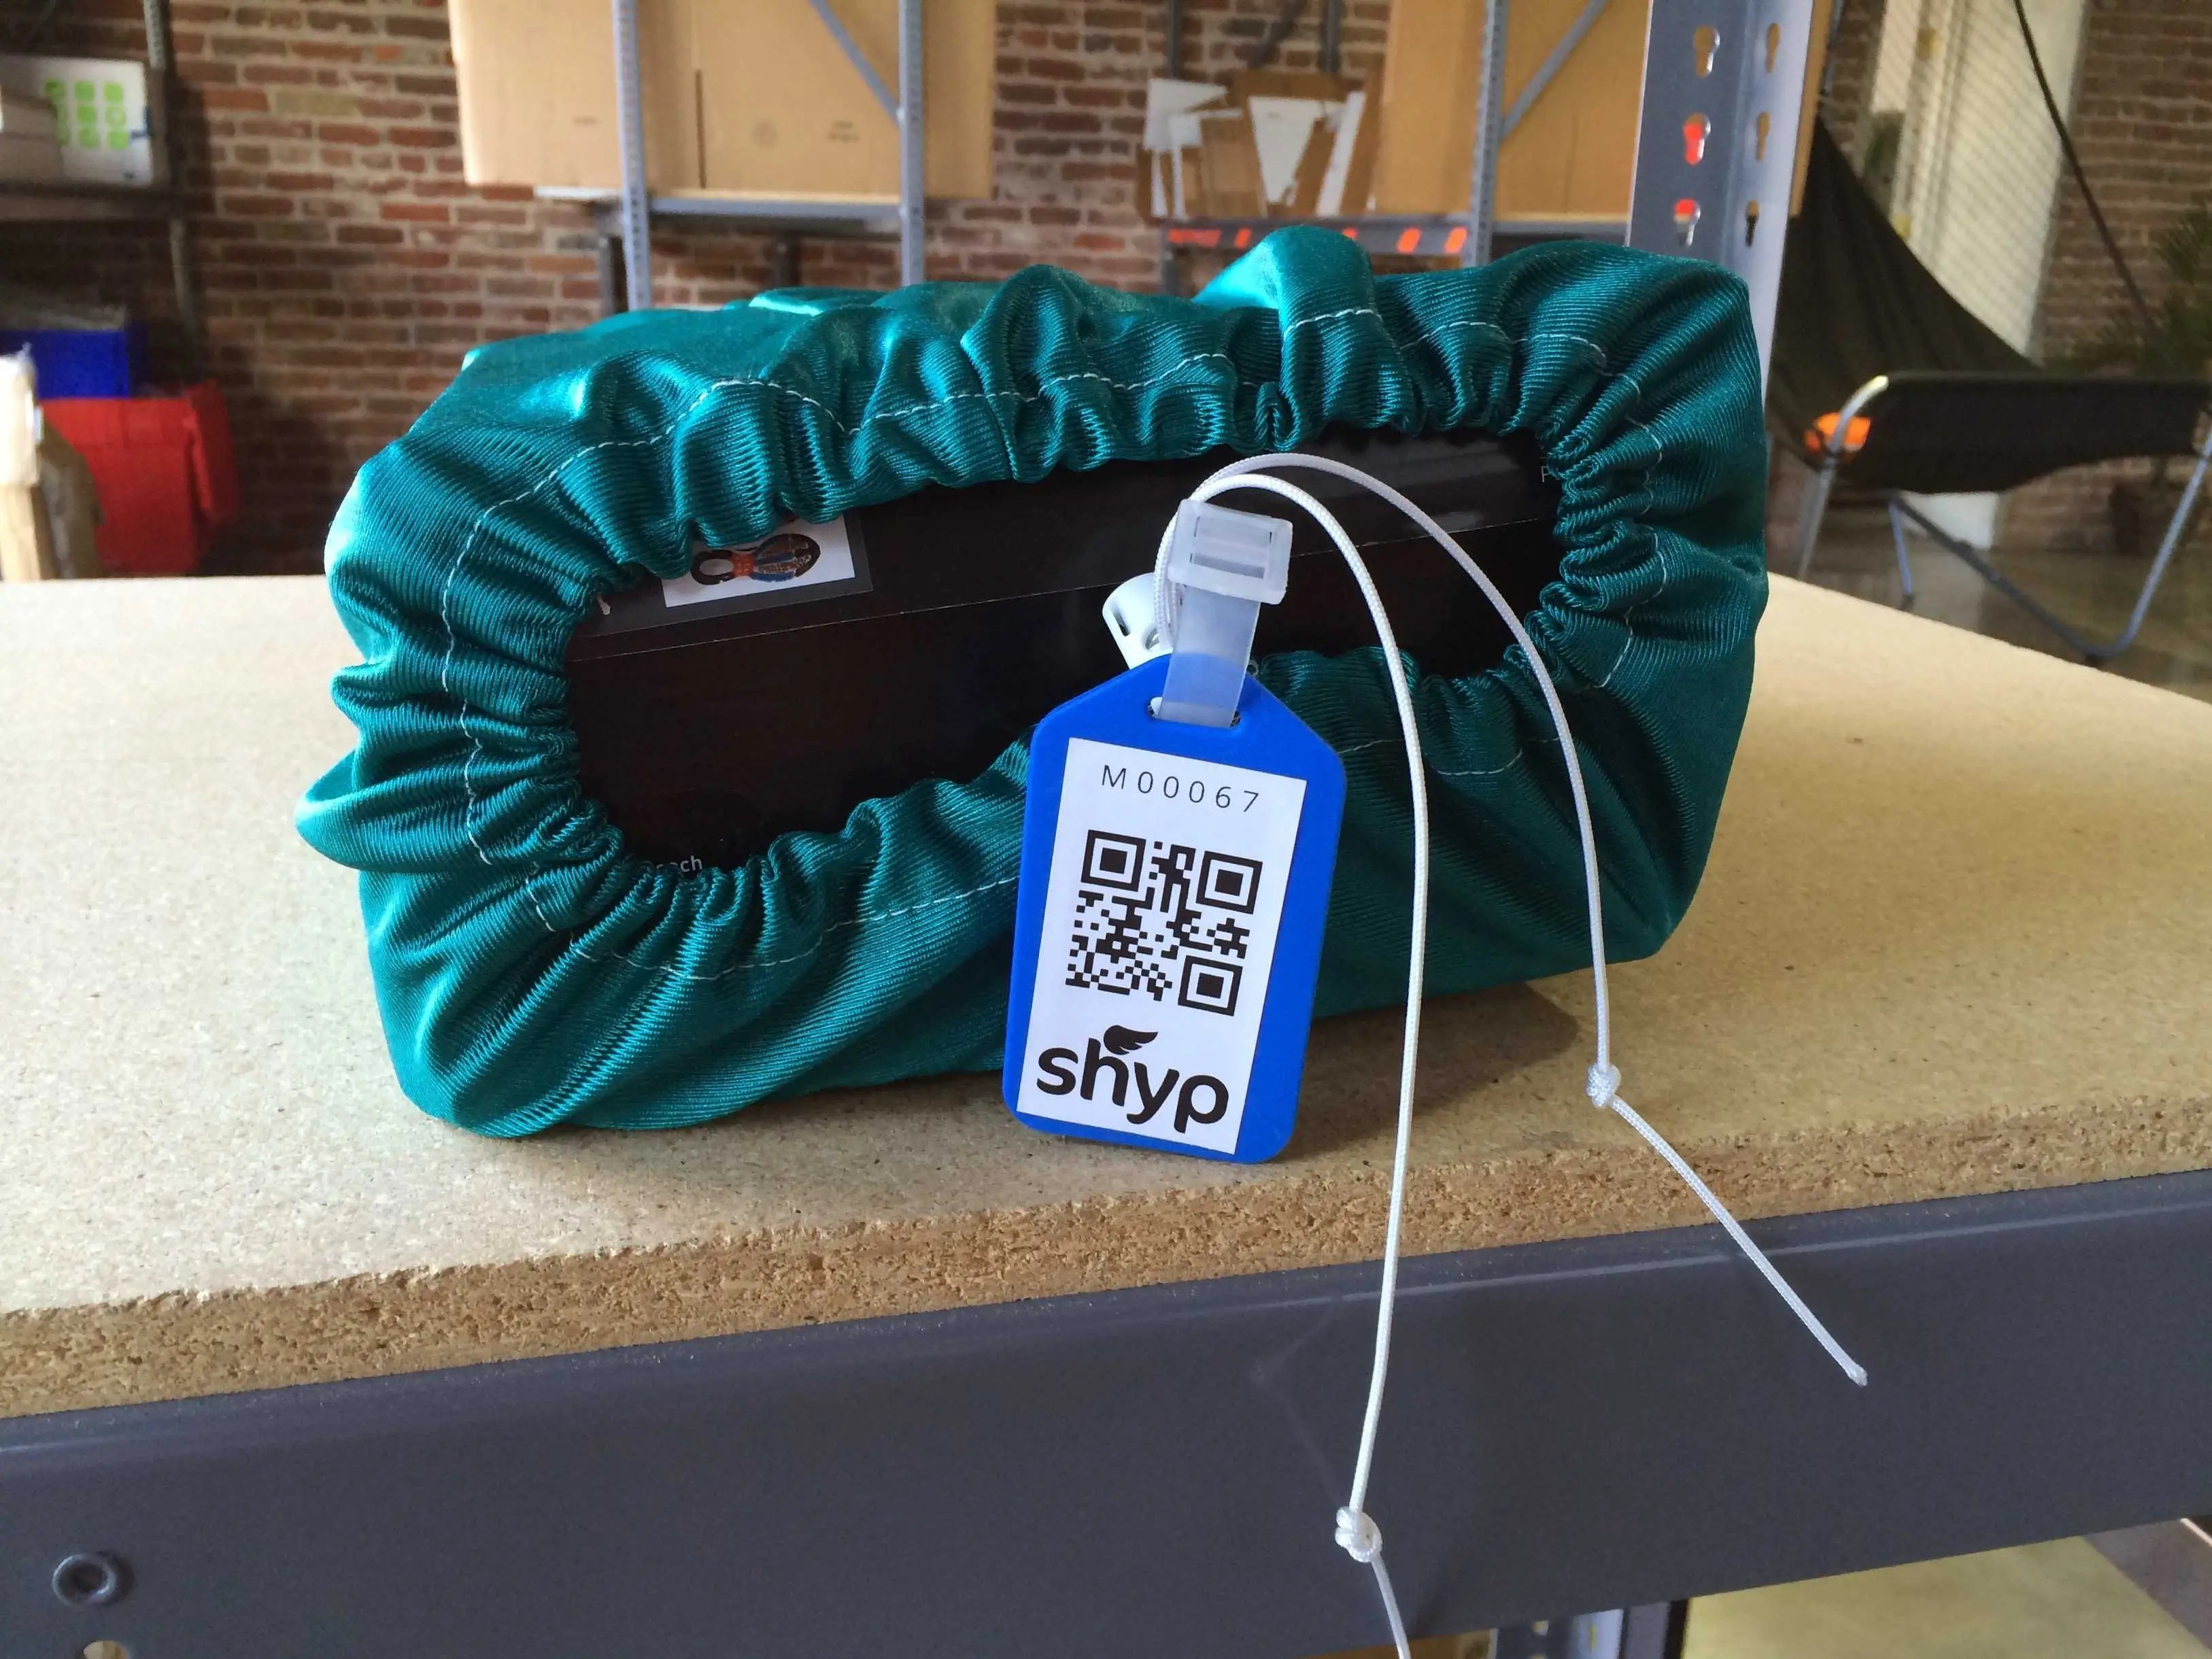 Shyp sends your packages for you, so you never have to step foot in the post office.